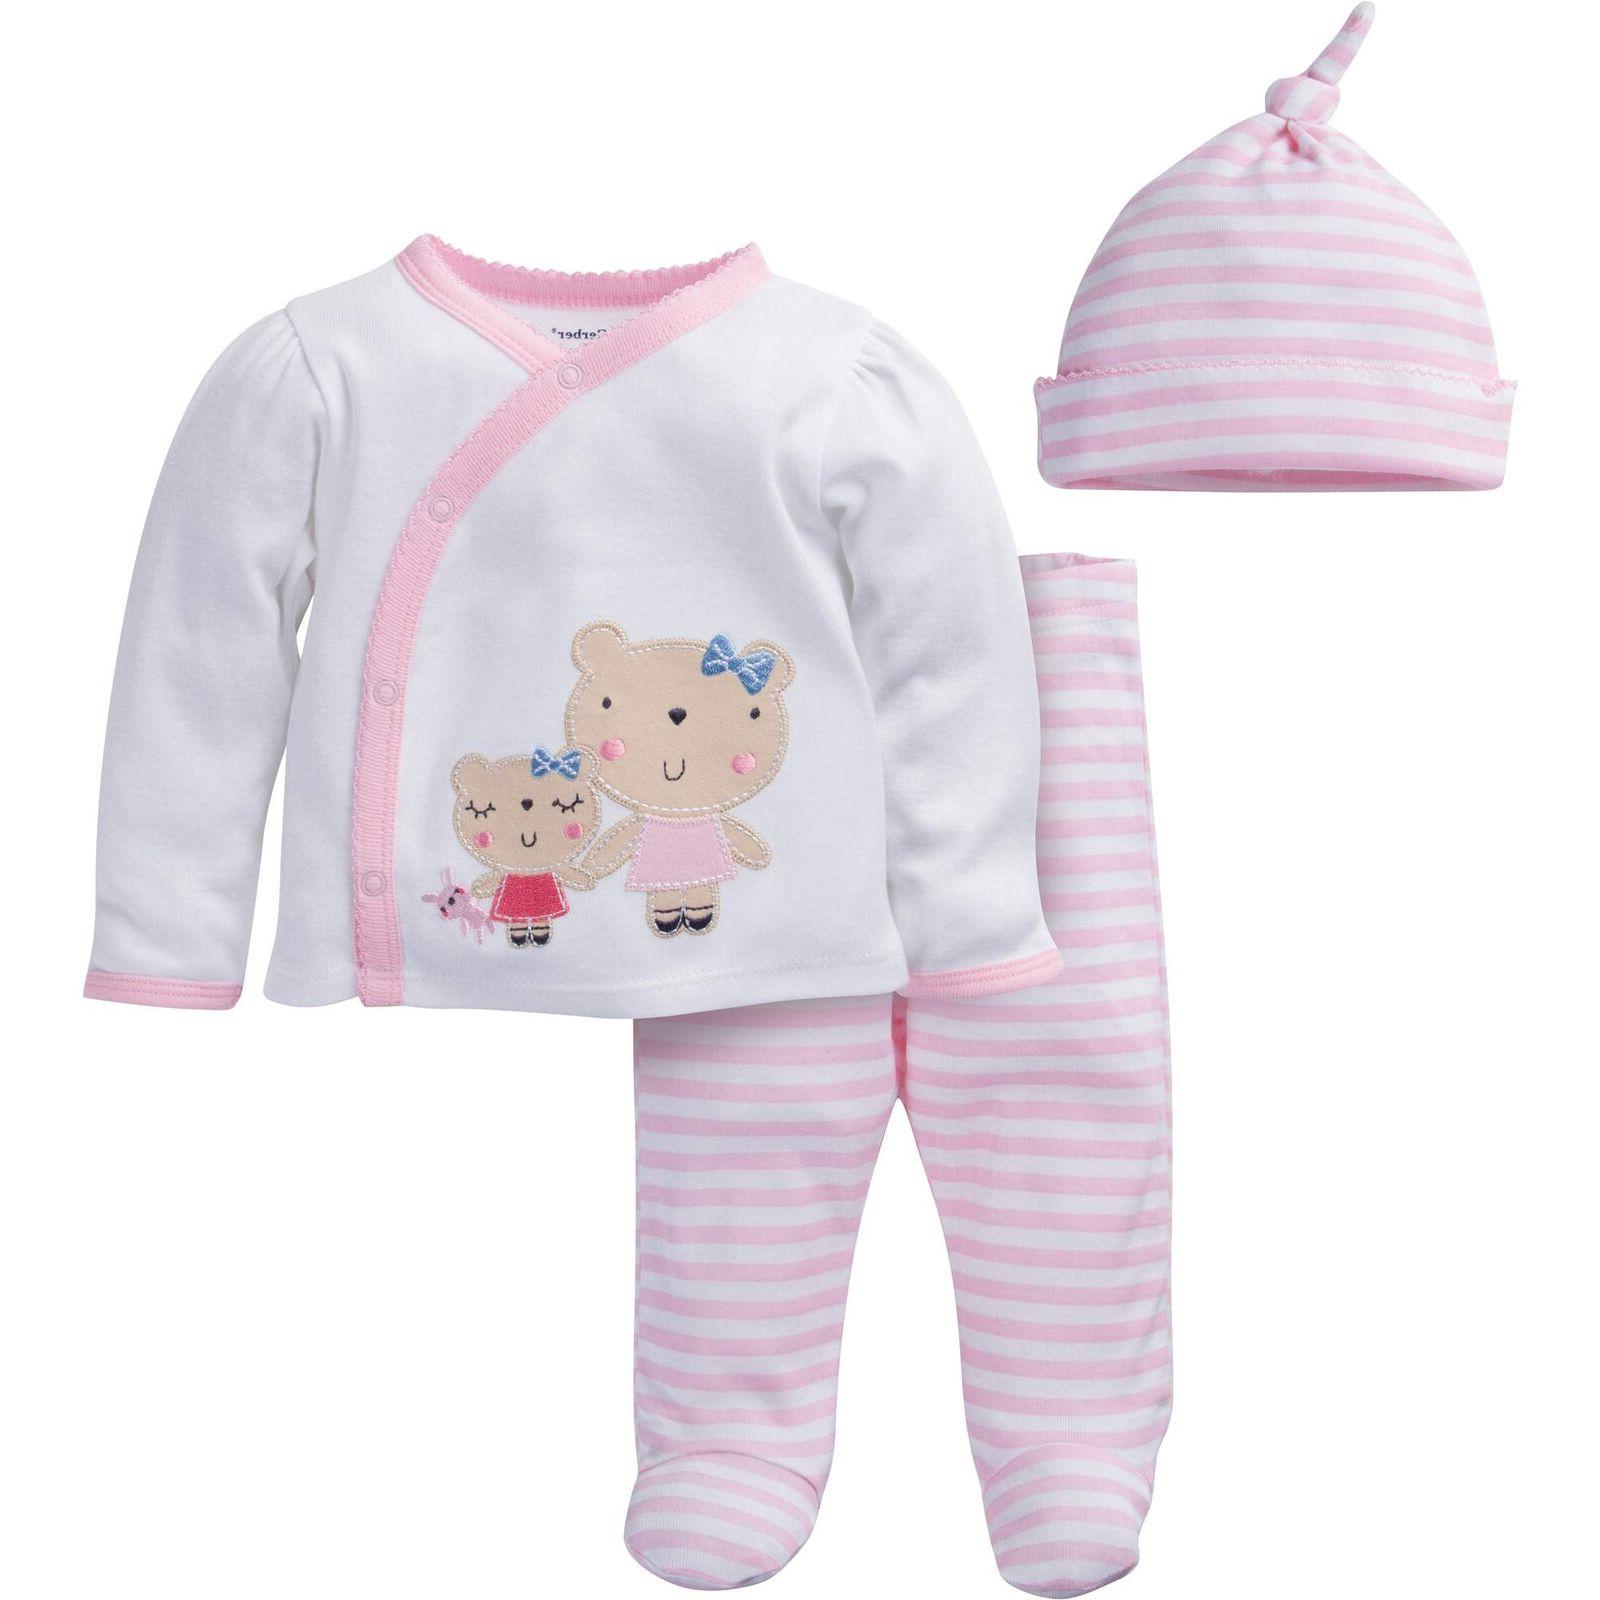 Gerber Baby Girls 3 Piece Set Take-Me-Home Outfit Various Si